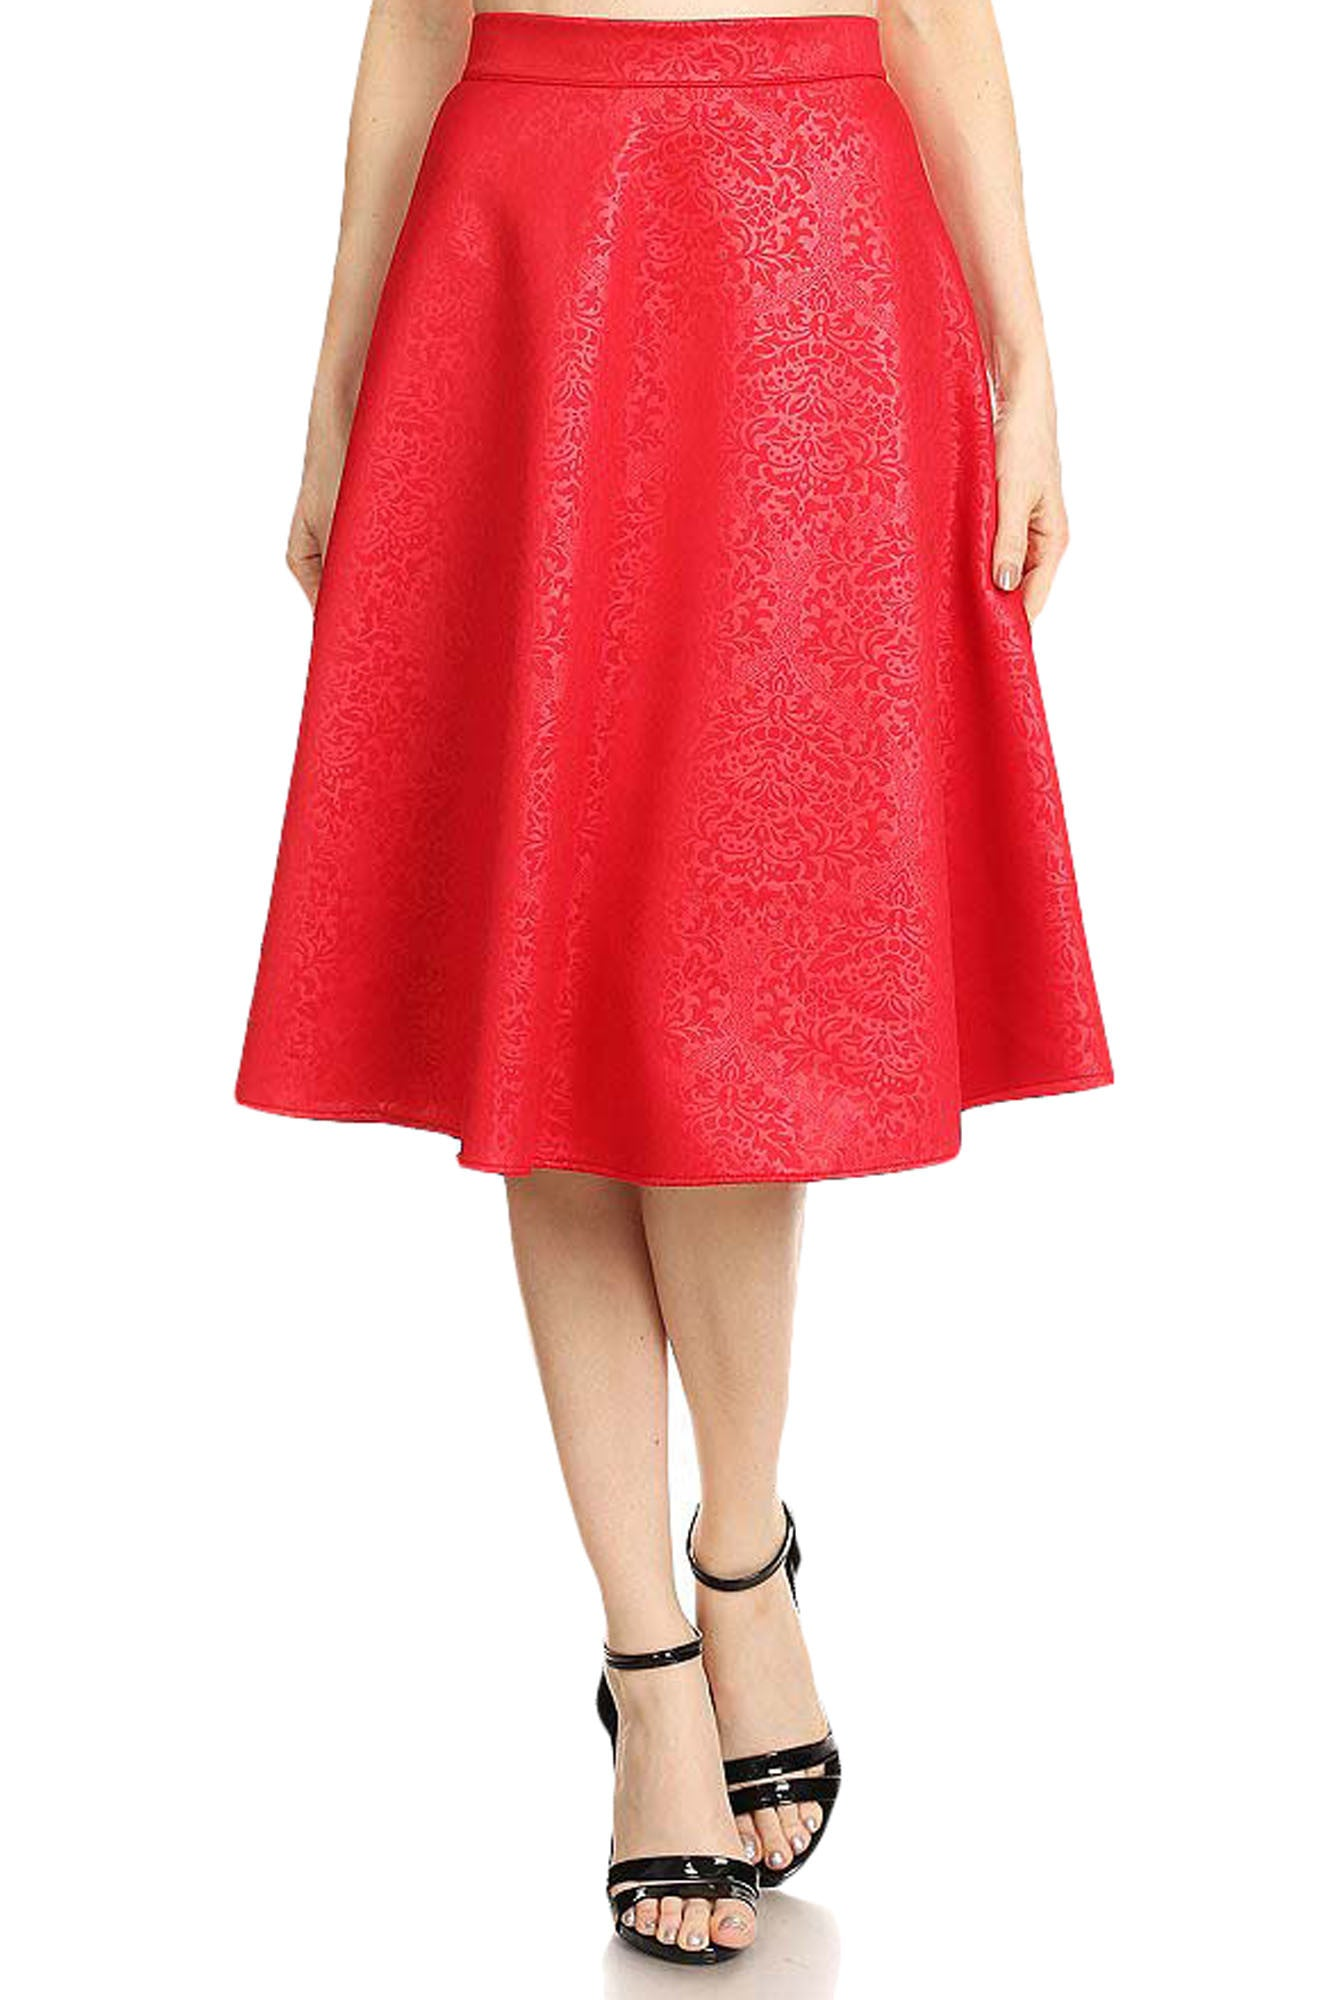 Avital Womens Damask Textured A-Line High Waisted Midi Skirt | Red